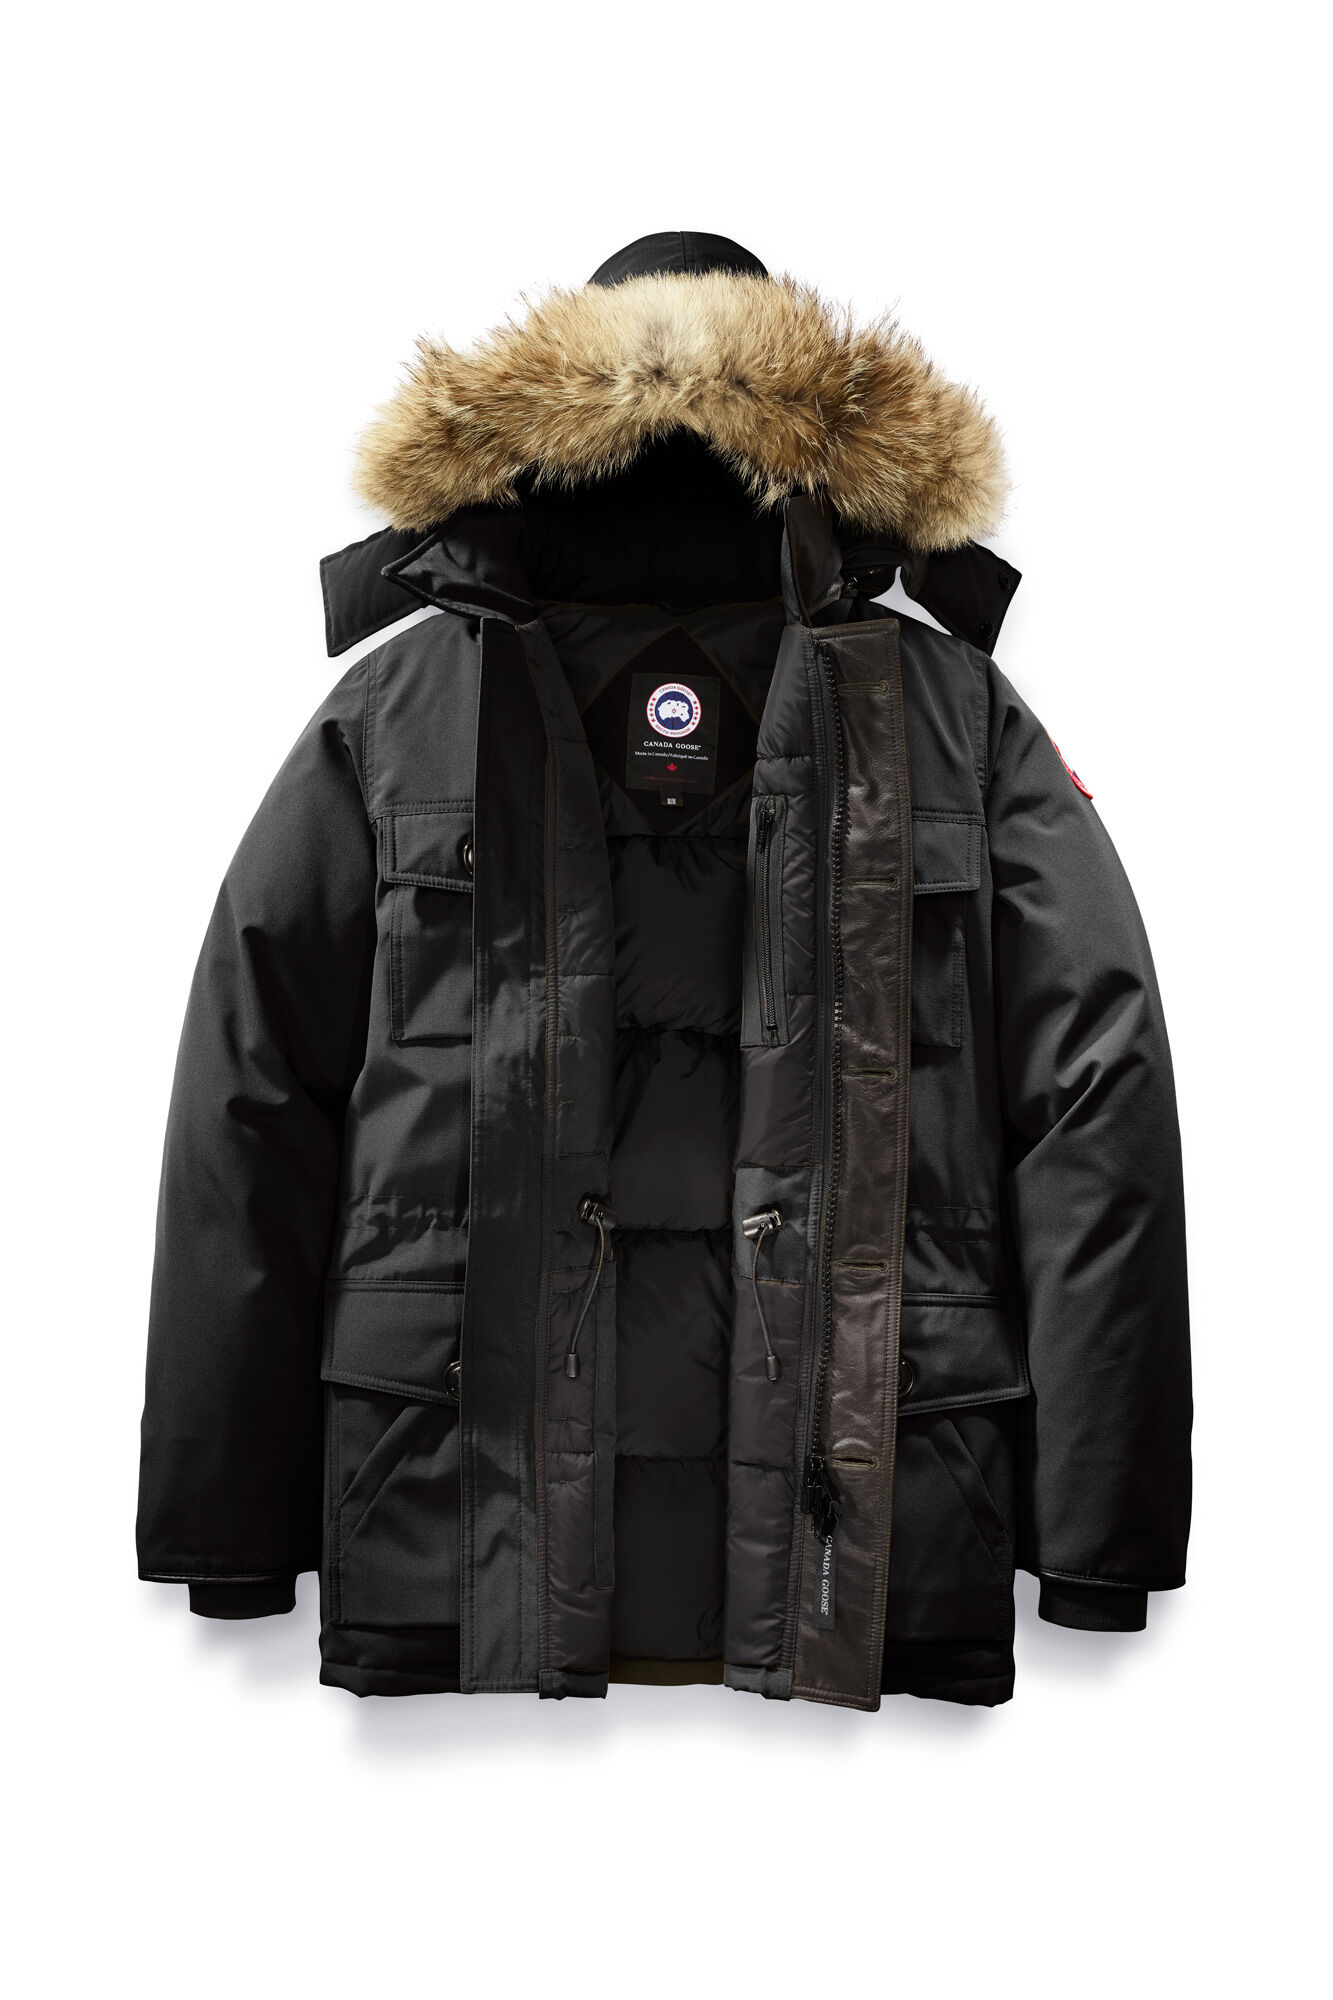 Canada Goose Military Green Parka